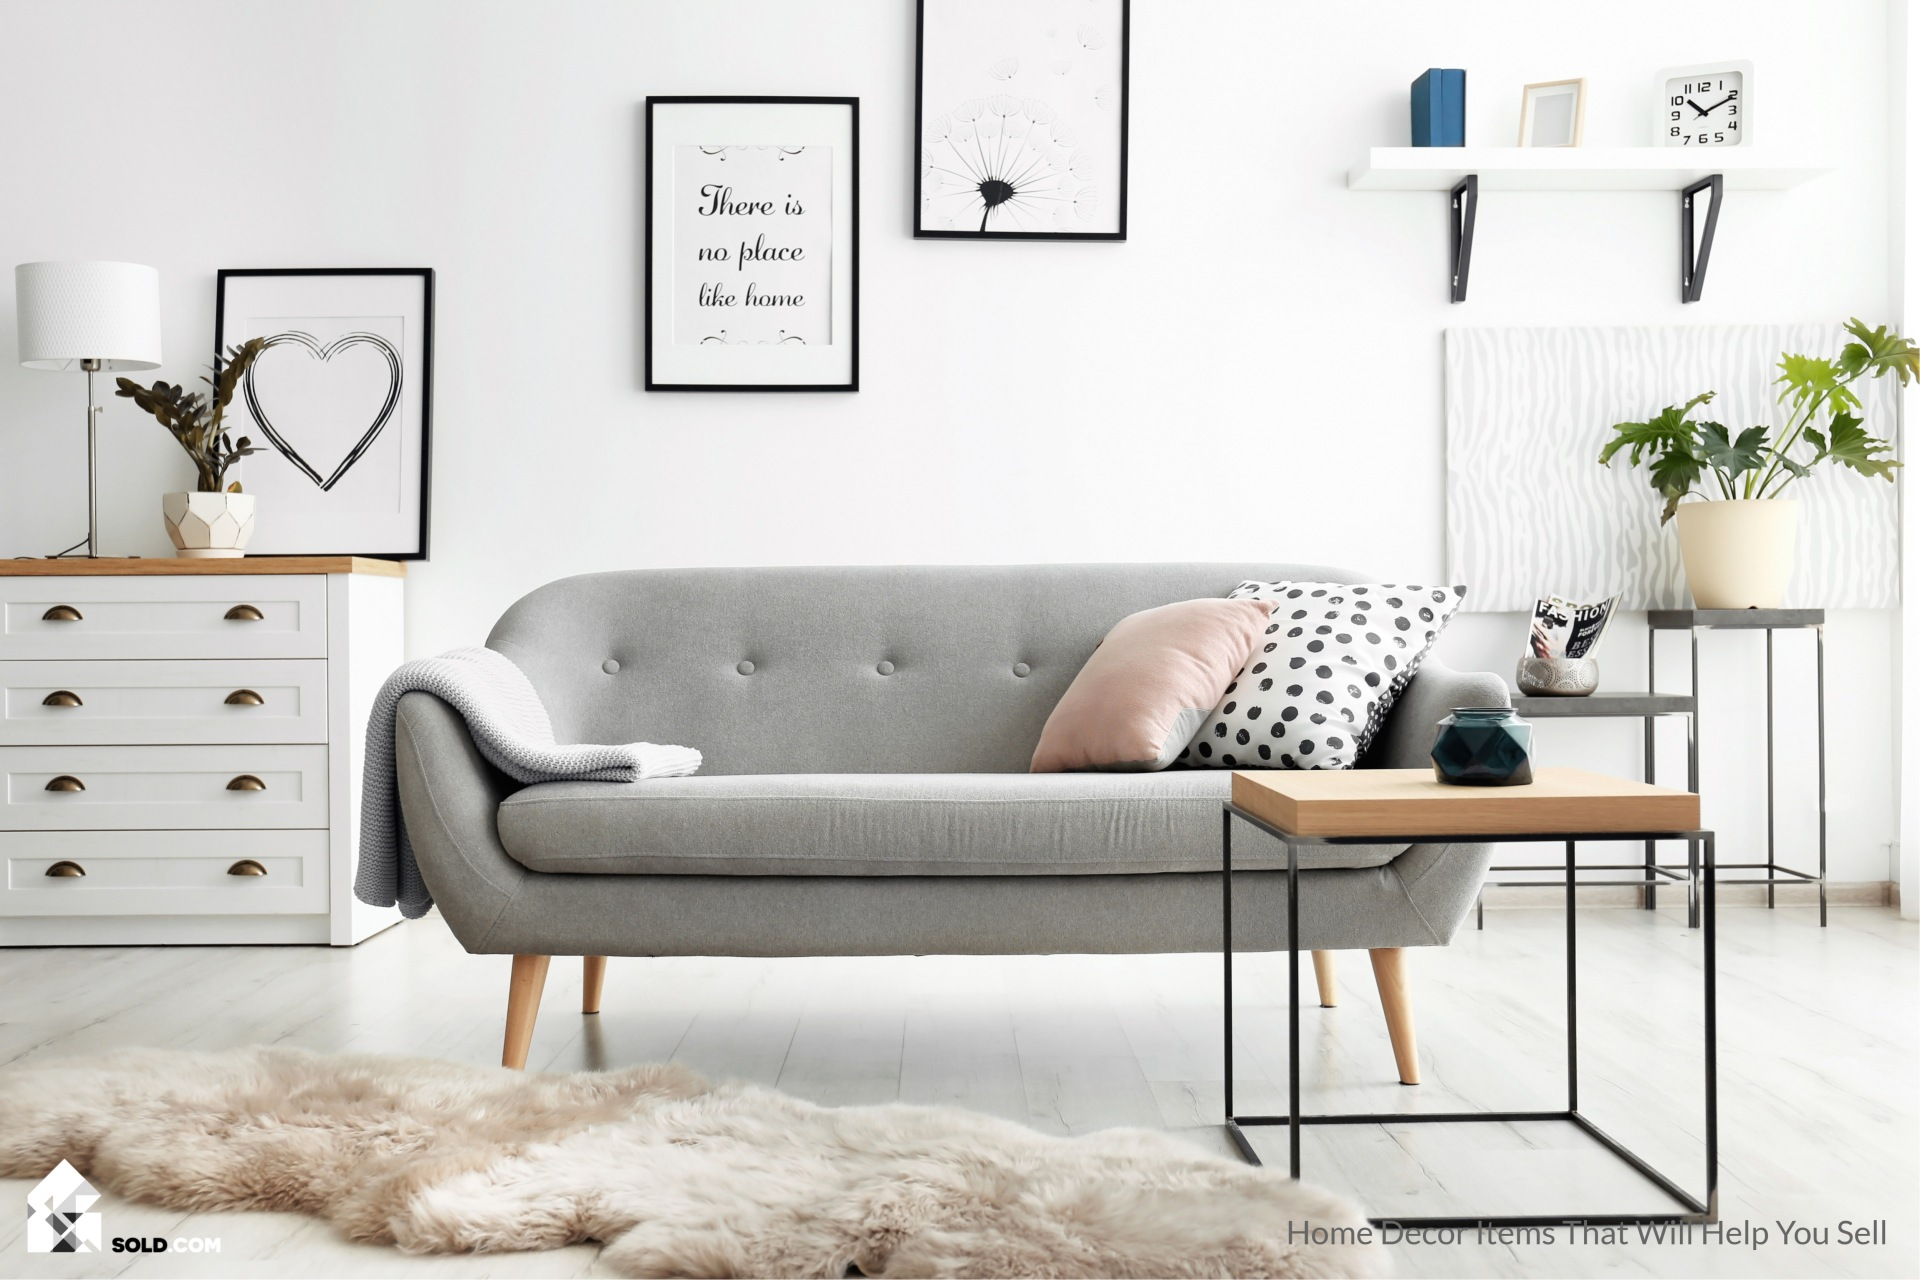 Home Decor Items That Will Help You Sell